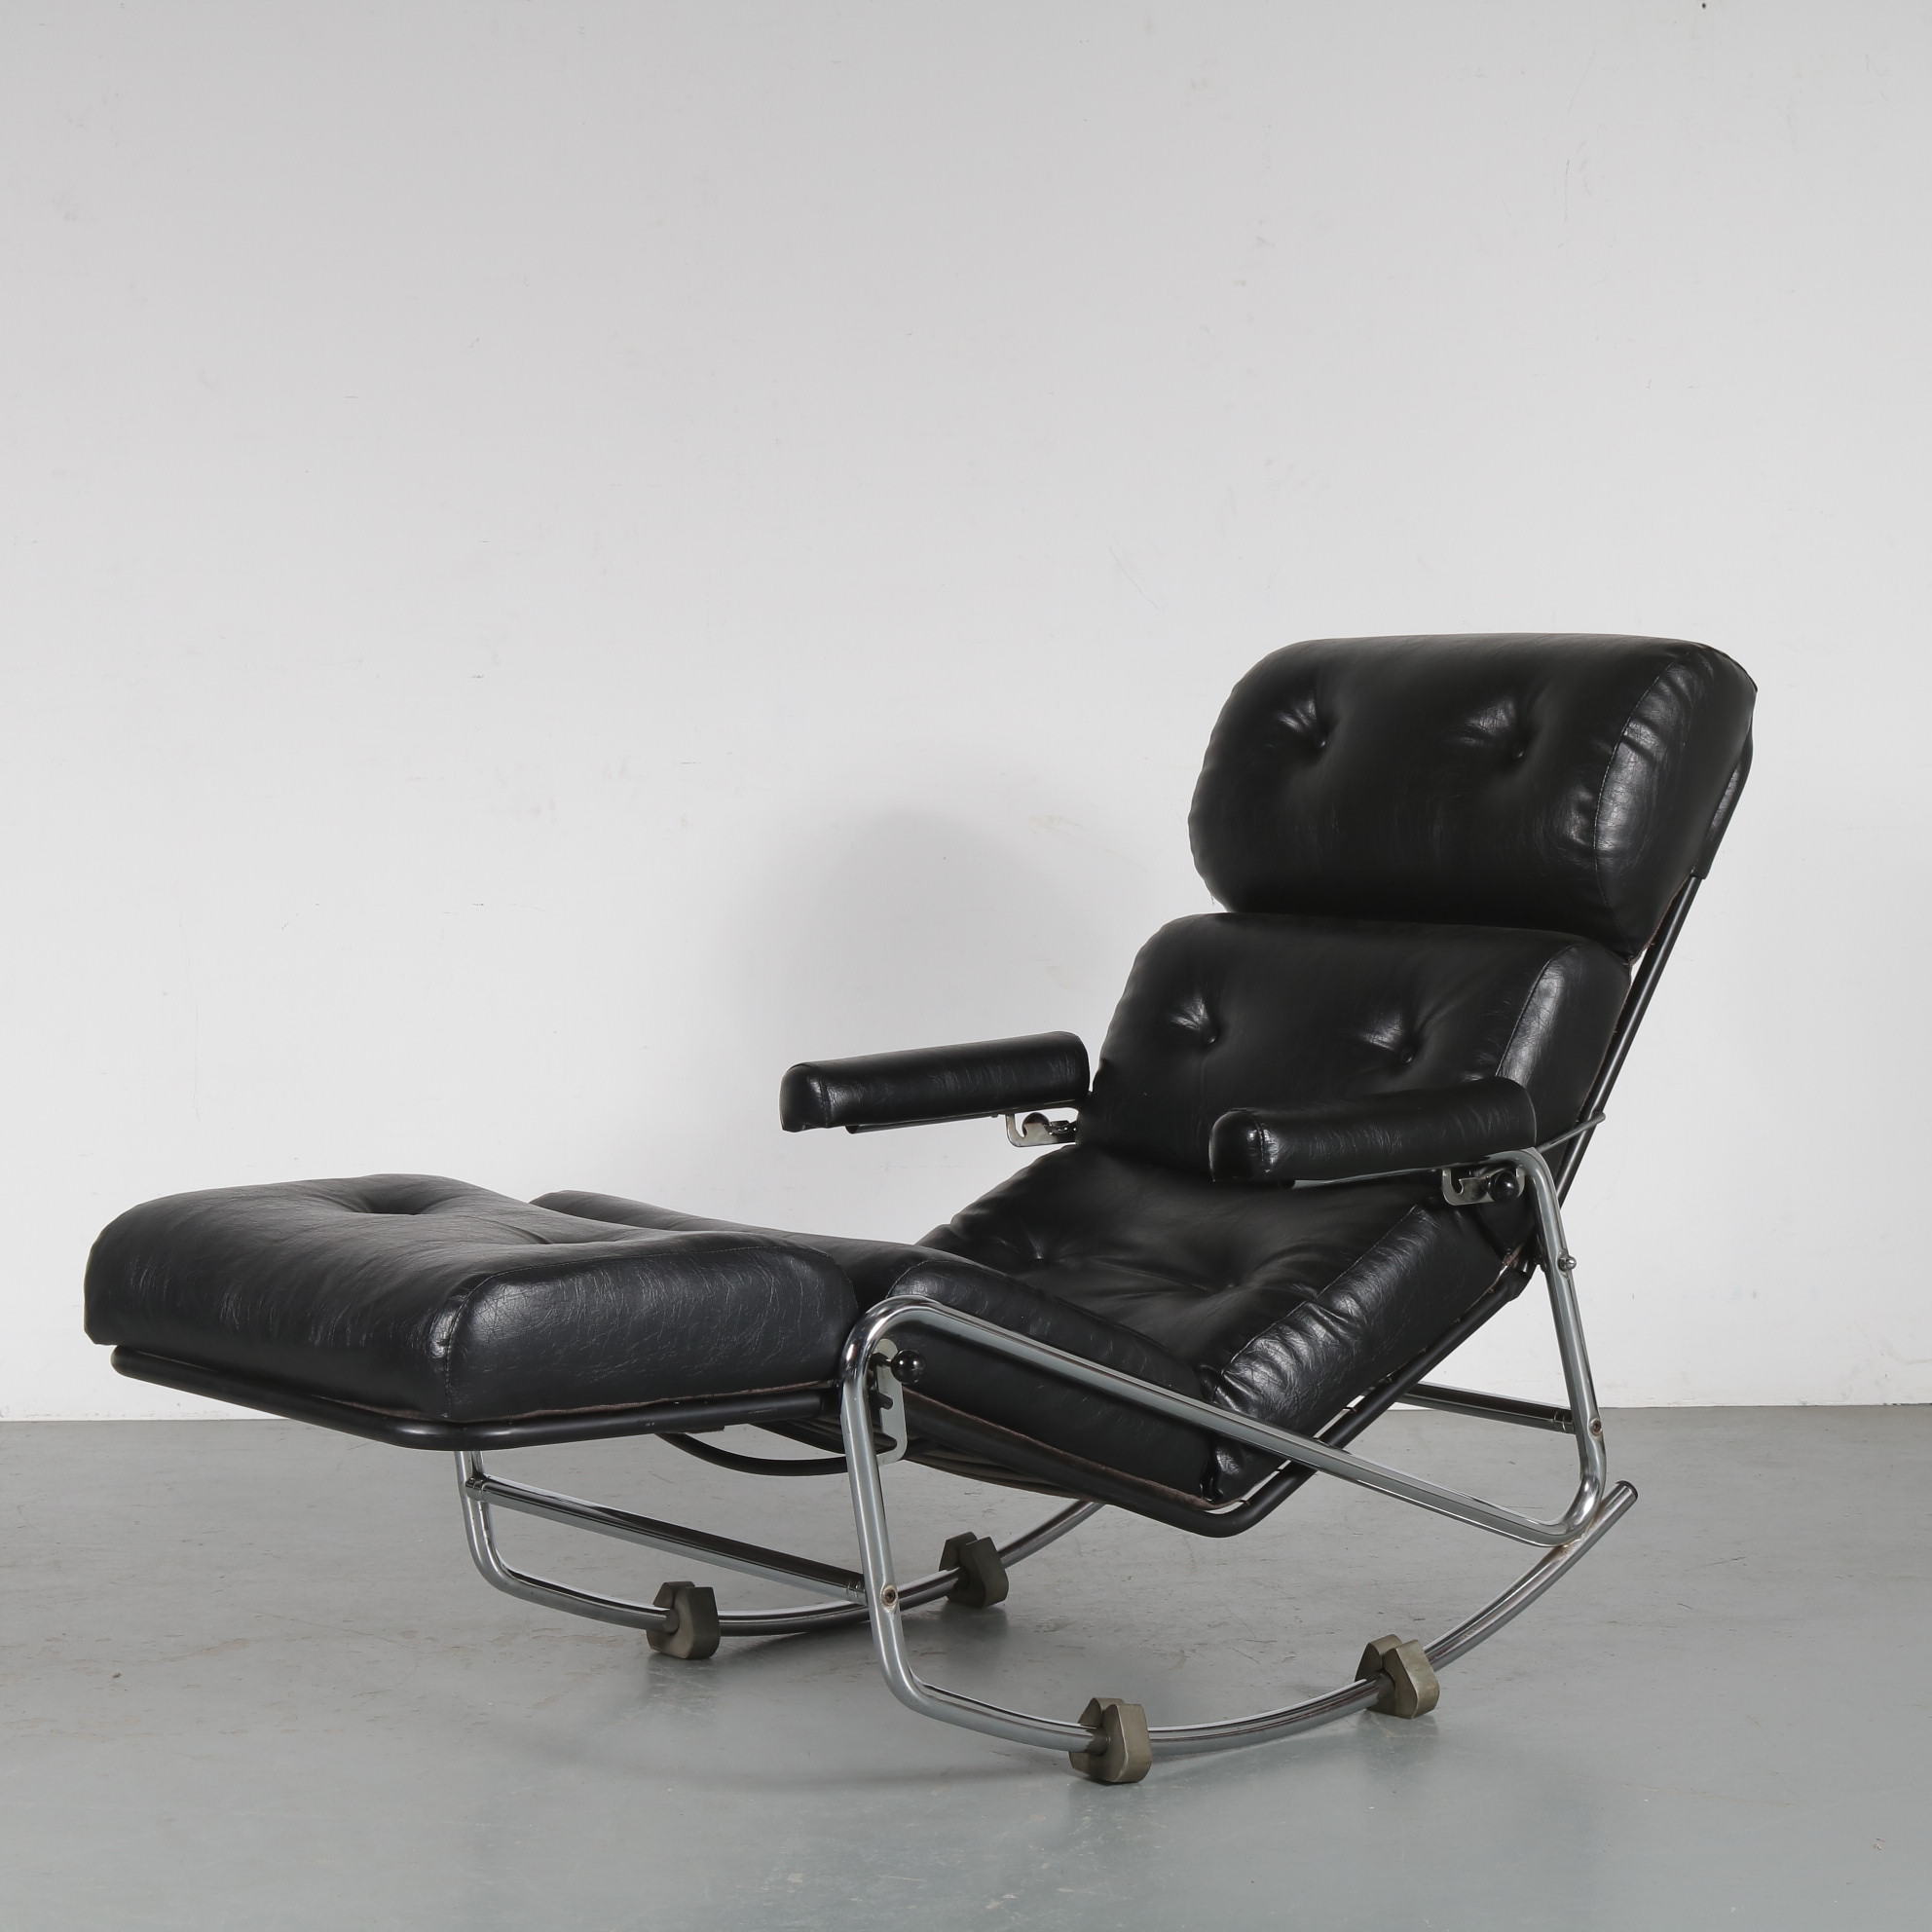 INC79 Rocking Lounge Chair, attributed to Jacques Adnet from France 1970